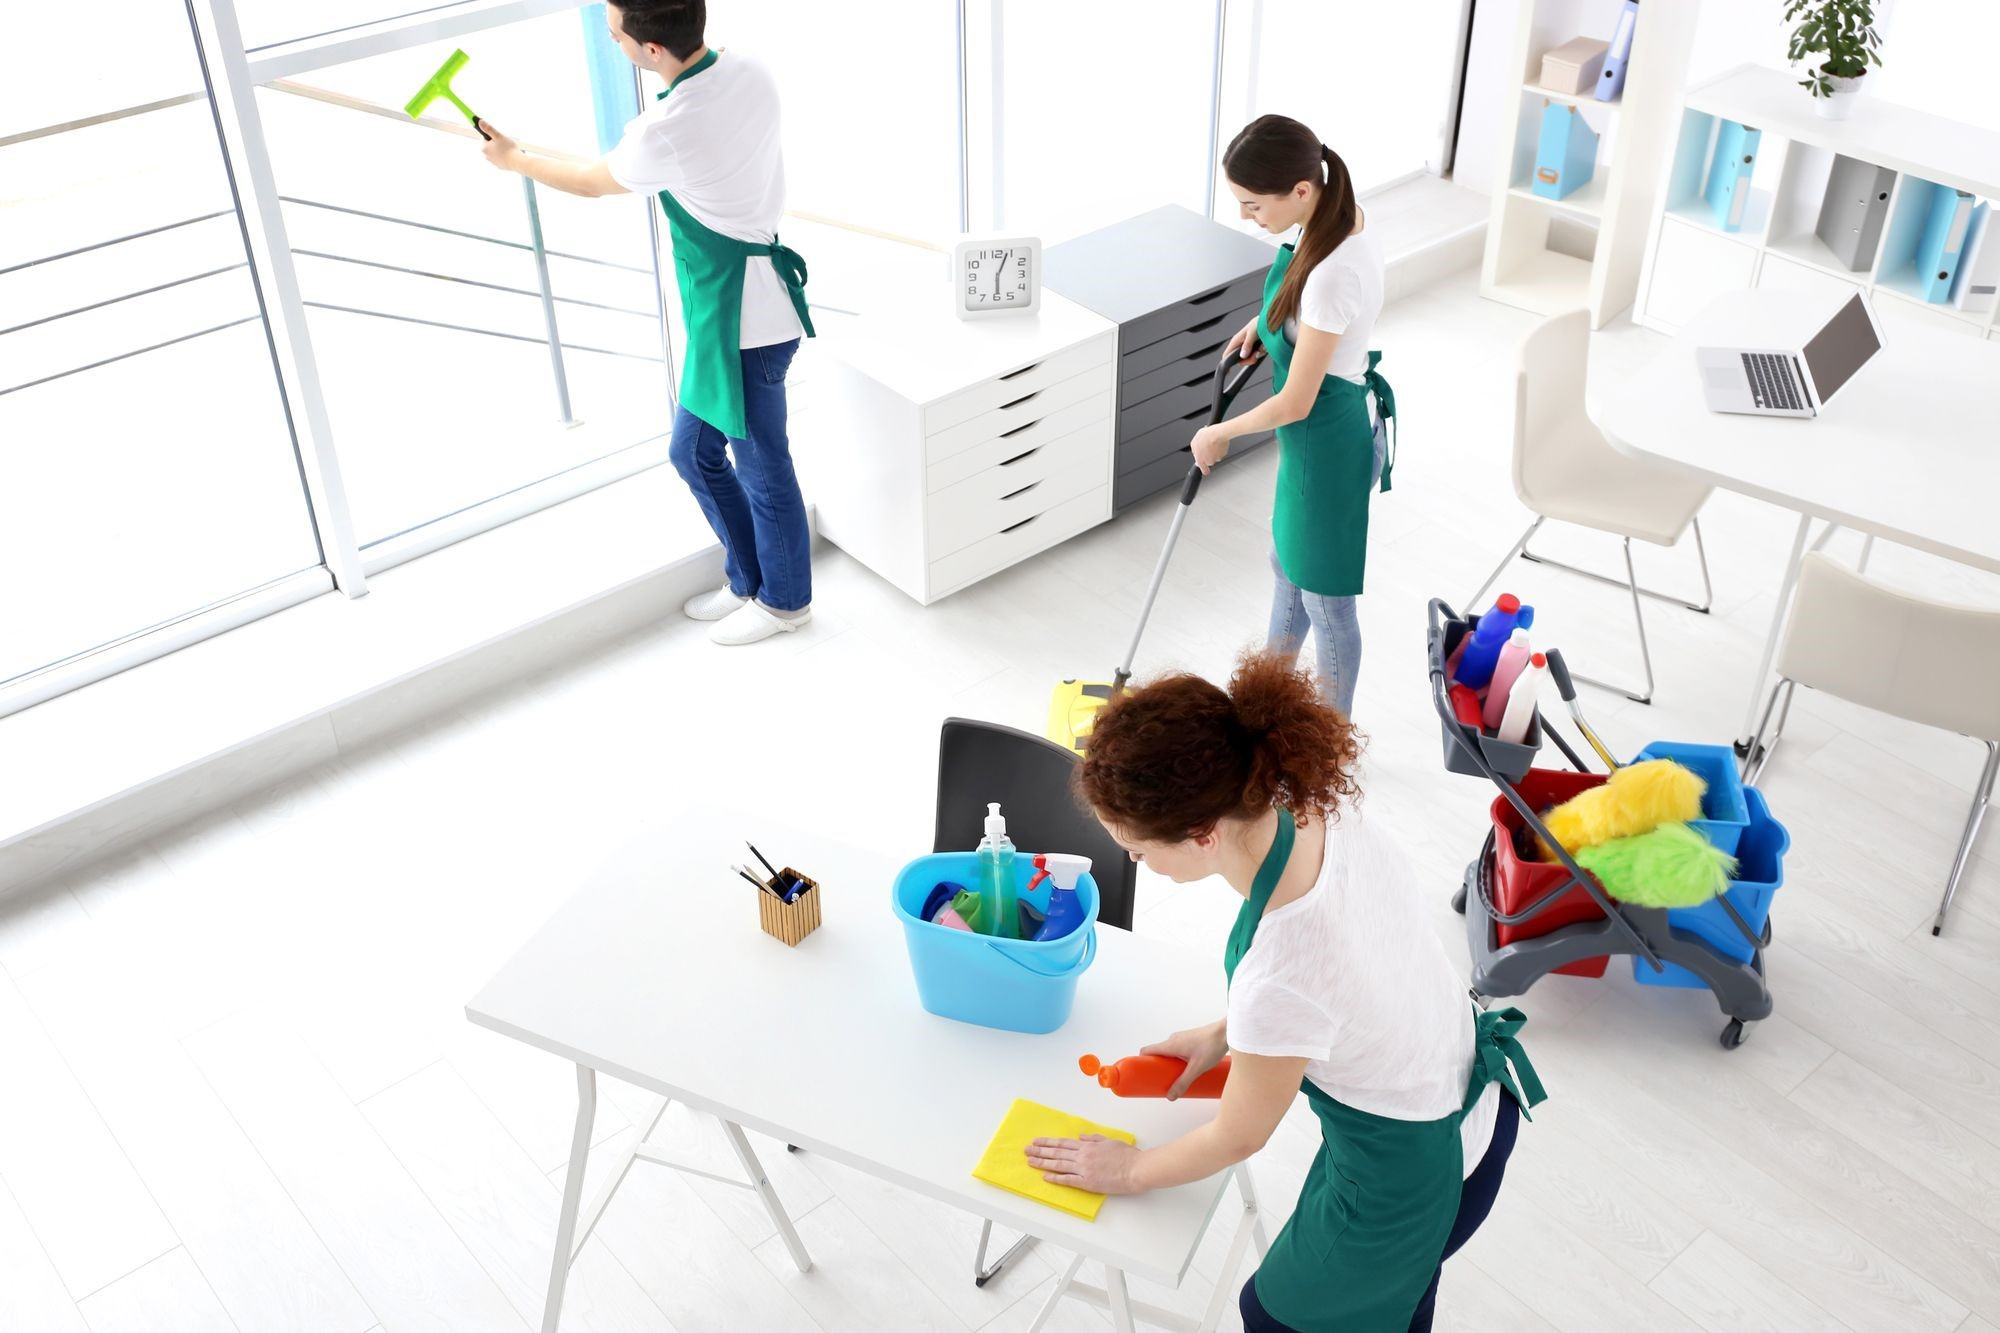 Janitorial Services Can Remove Dust After a Major Workplace Renovation